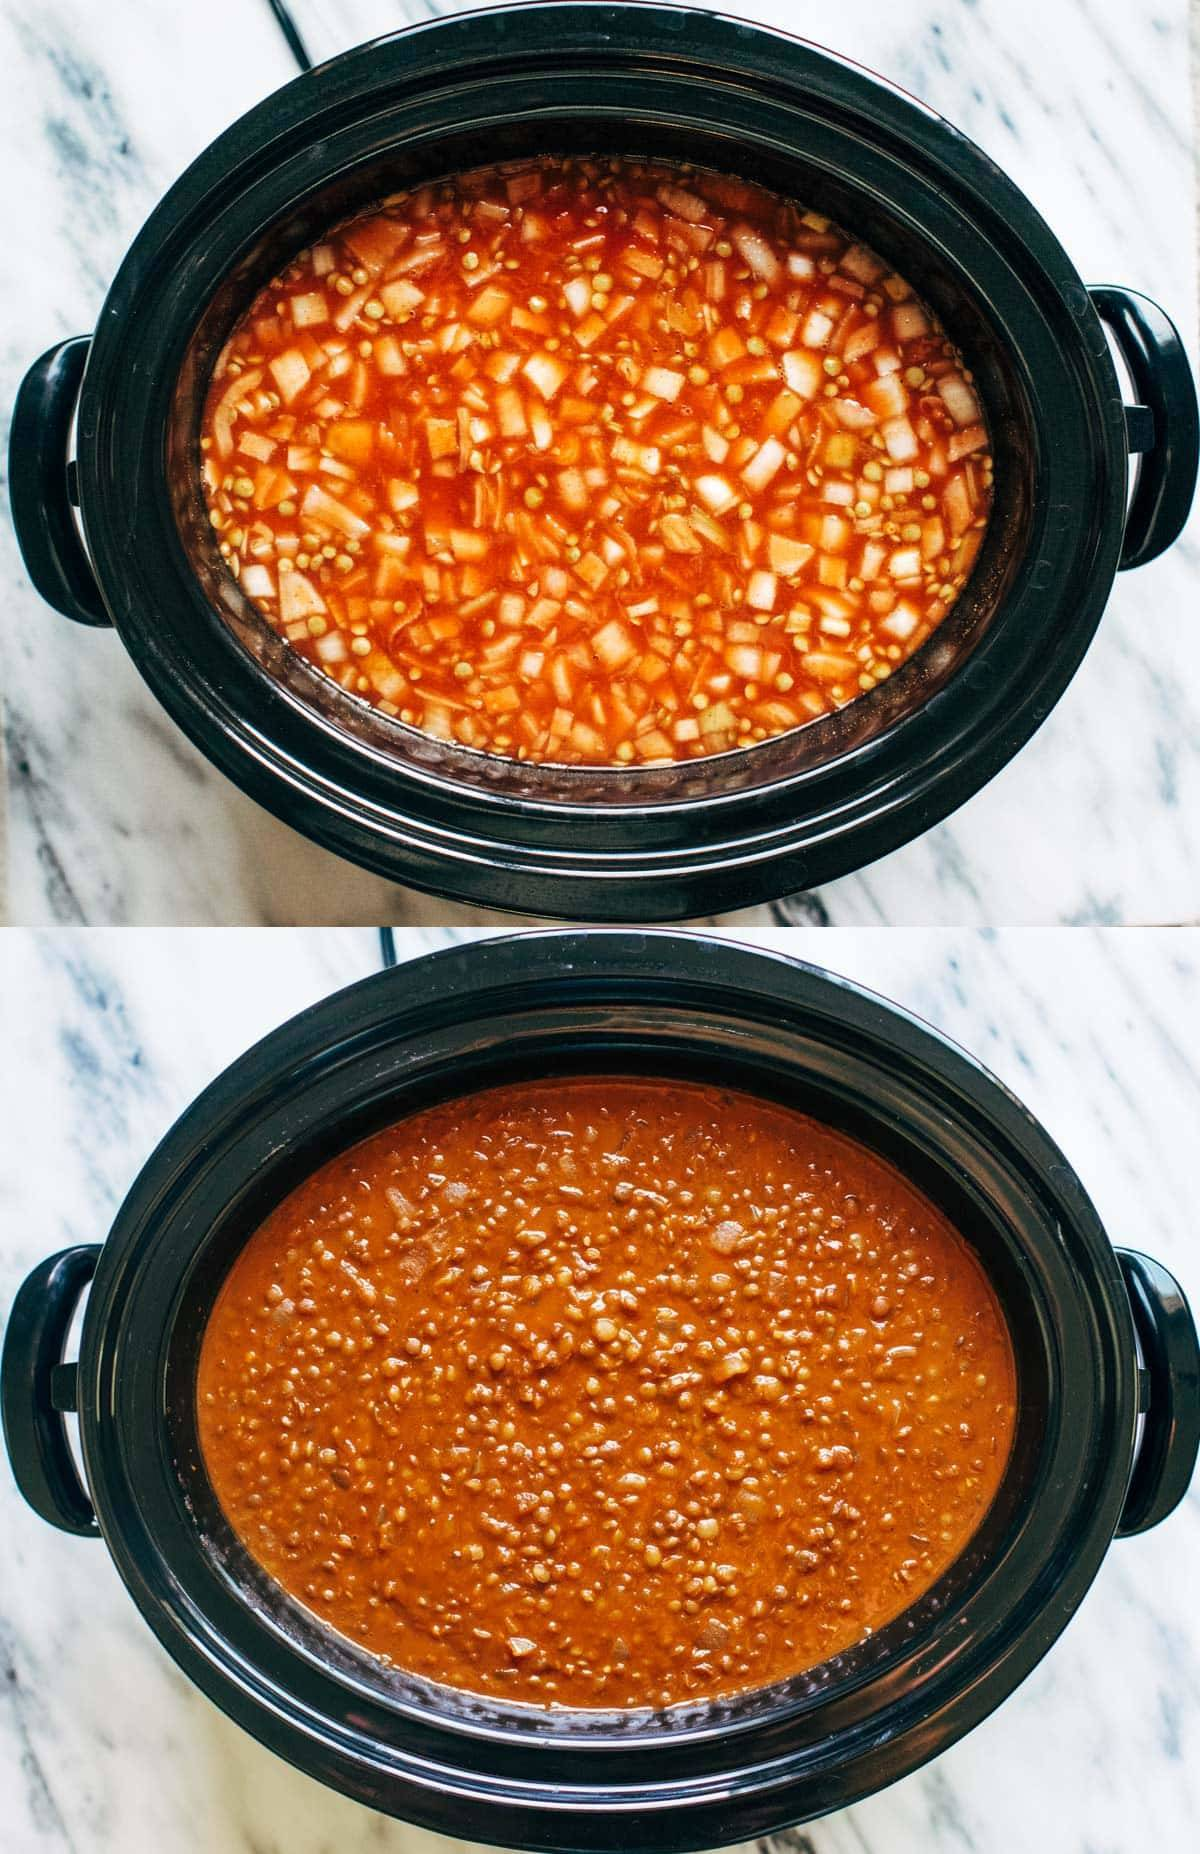 Red lentil curry in two images in a slow cooker.